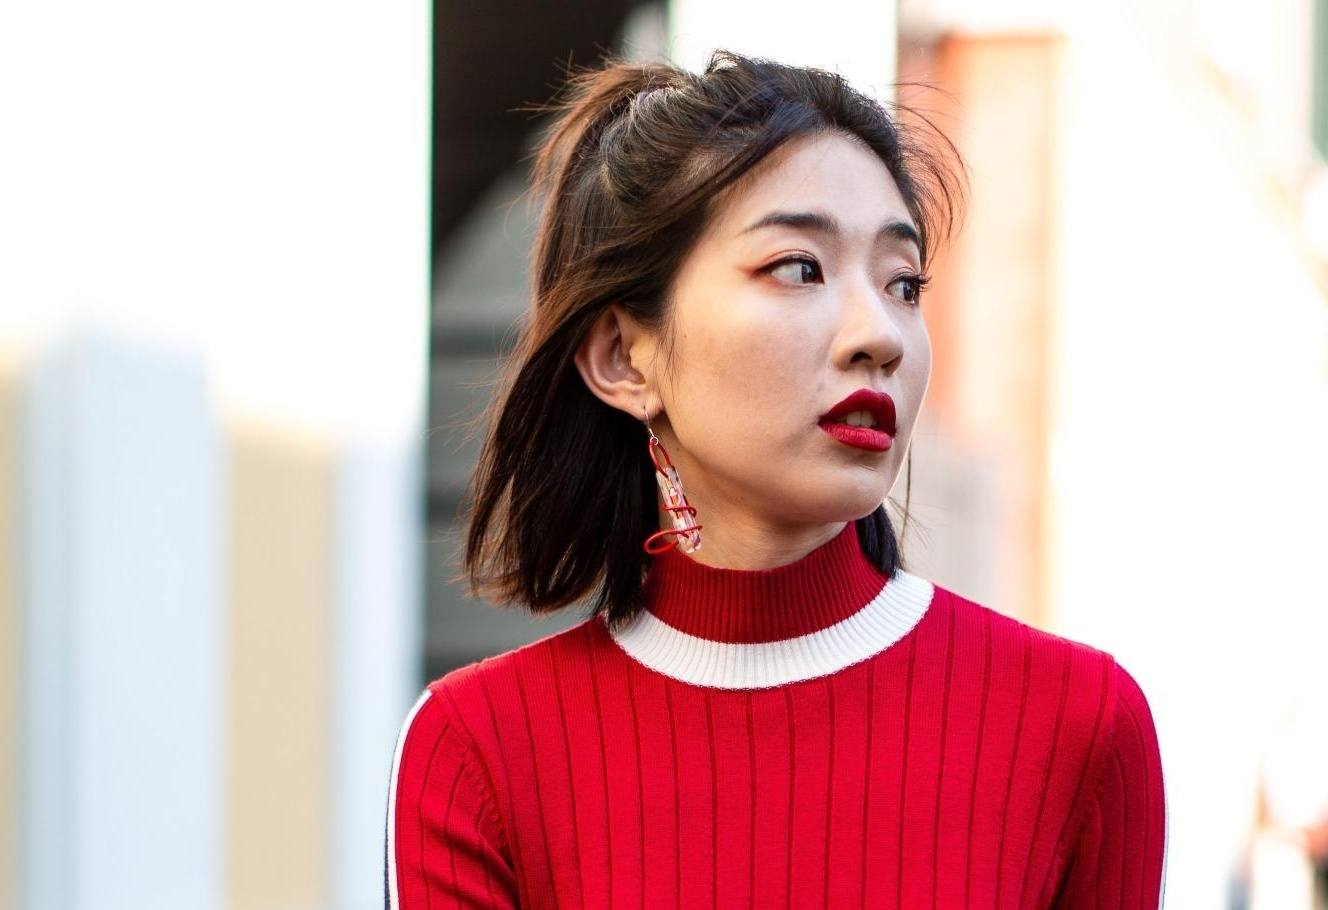 Asian woman with medium-length straight hair in a half updo wearing a red sweater outdoors